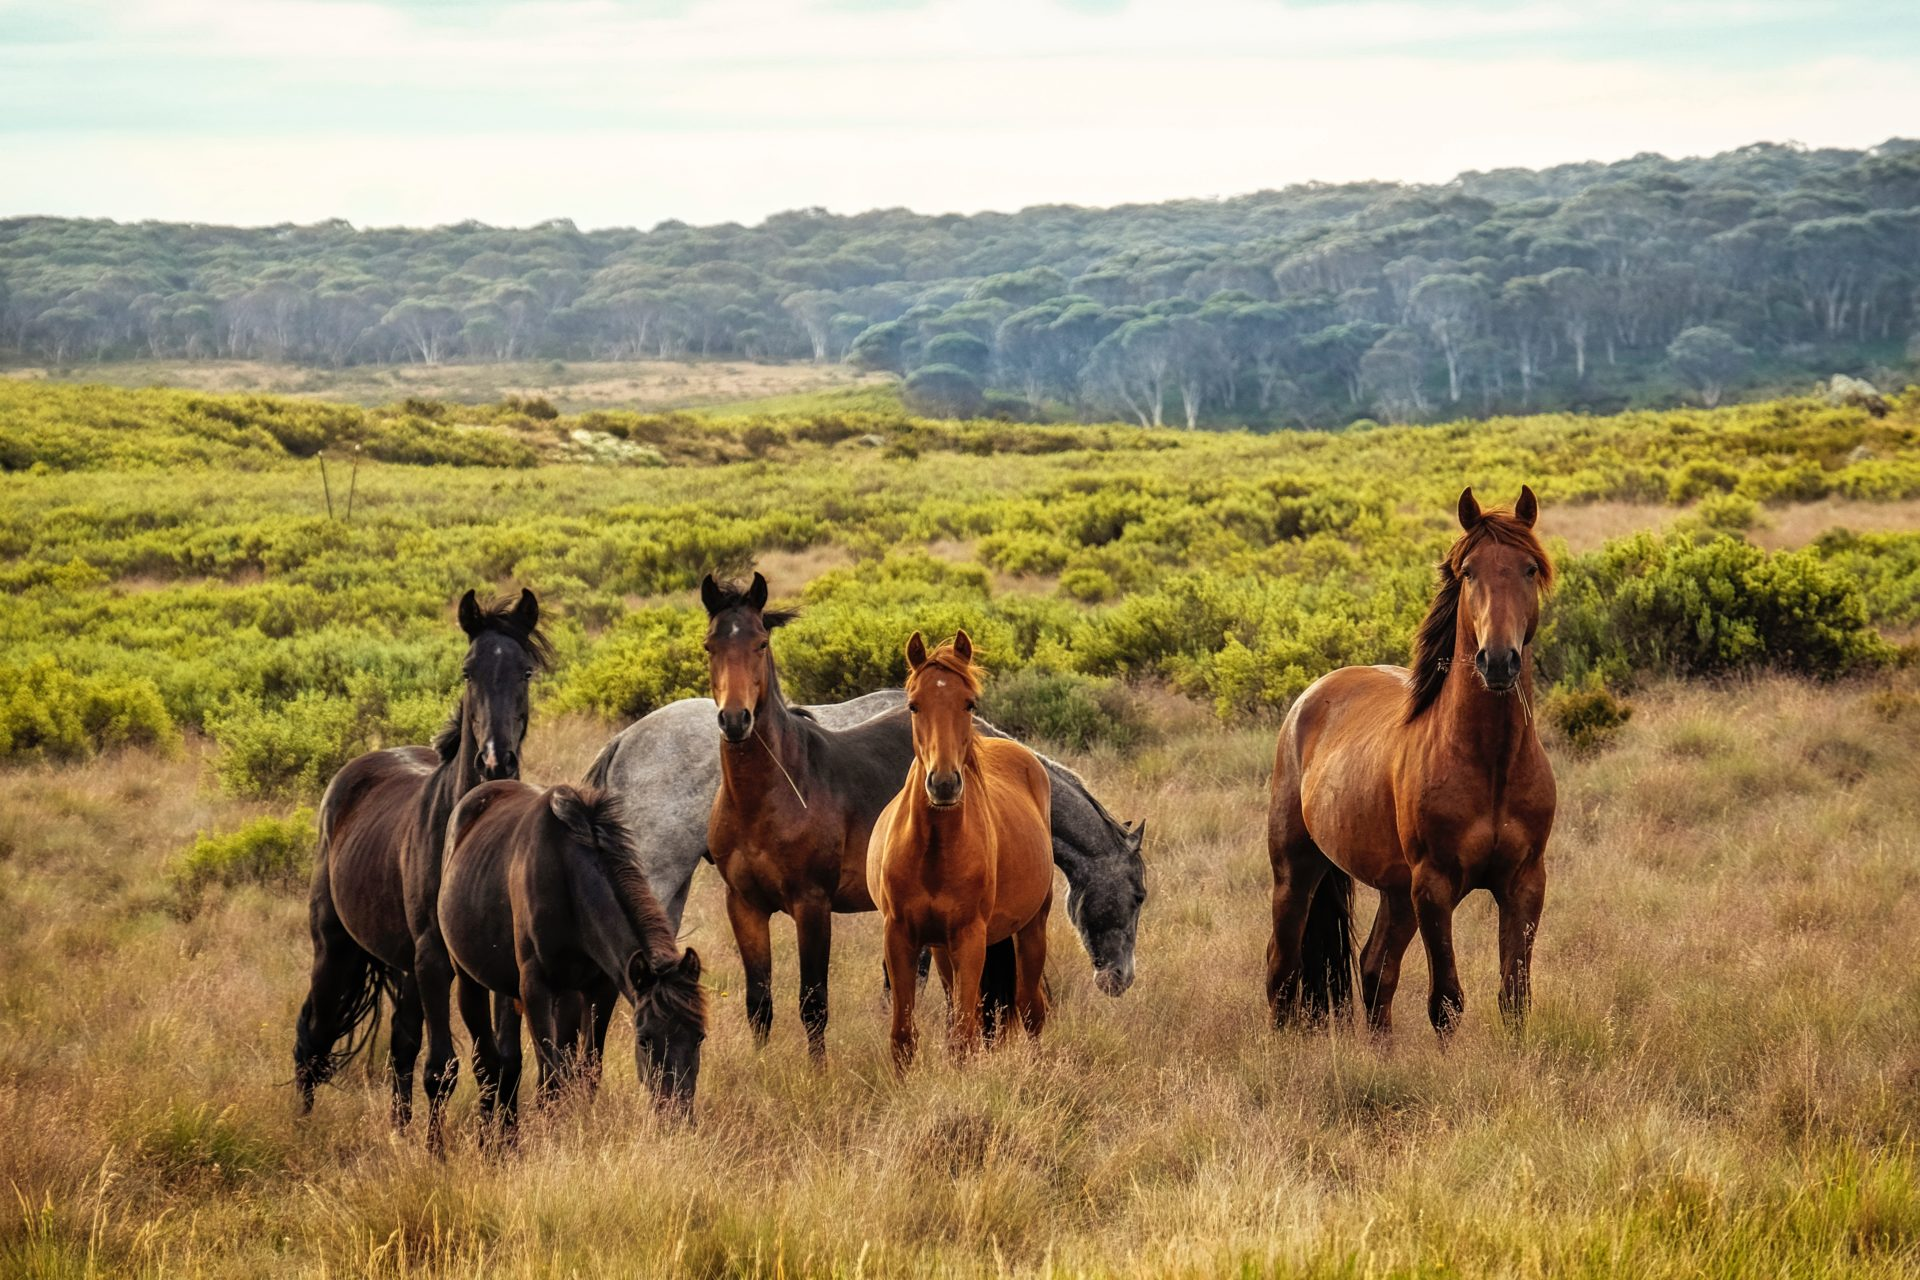 Essential Oils to Help Equines